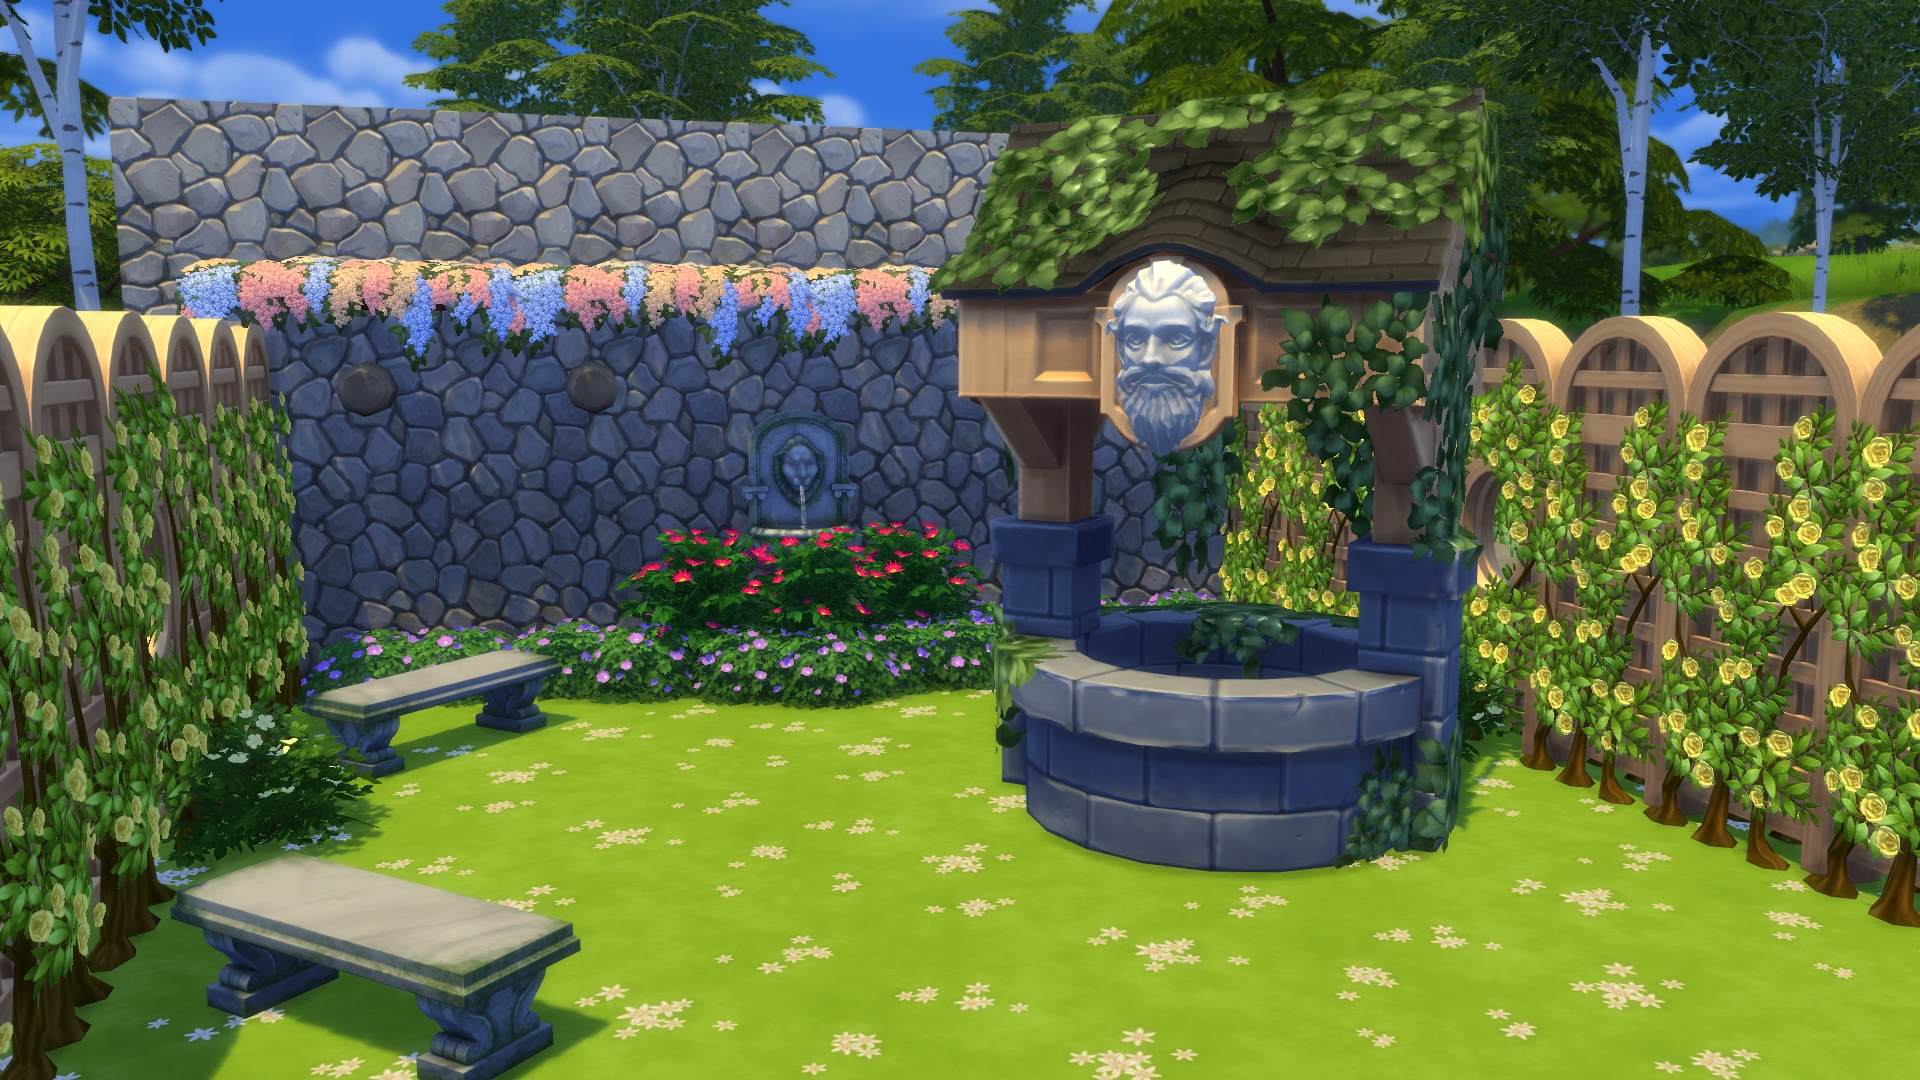 The sims 4 stuff pack review romantic garden brings for Indoor gardening sims 4